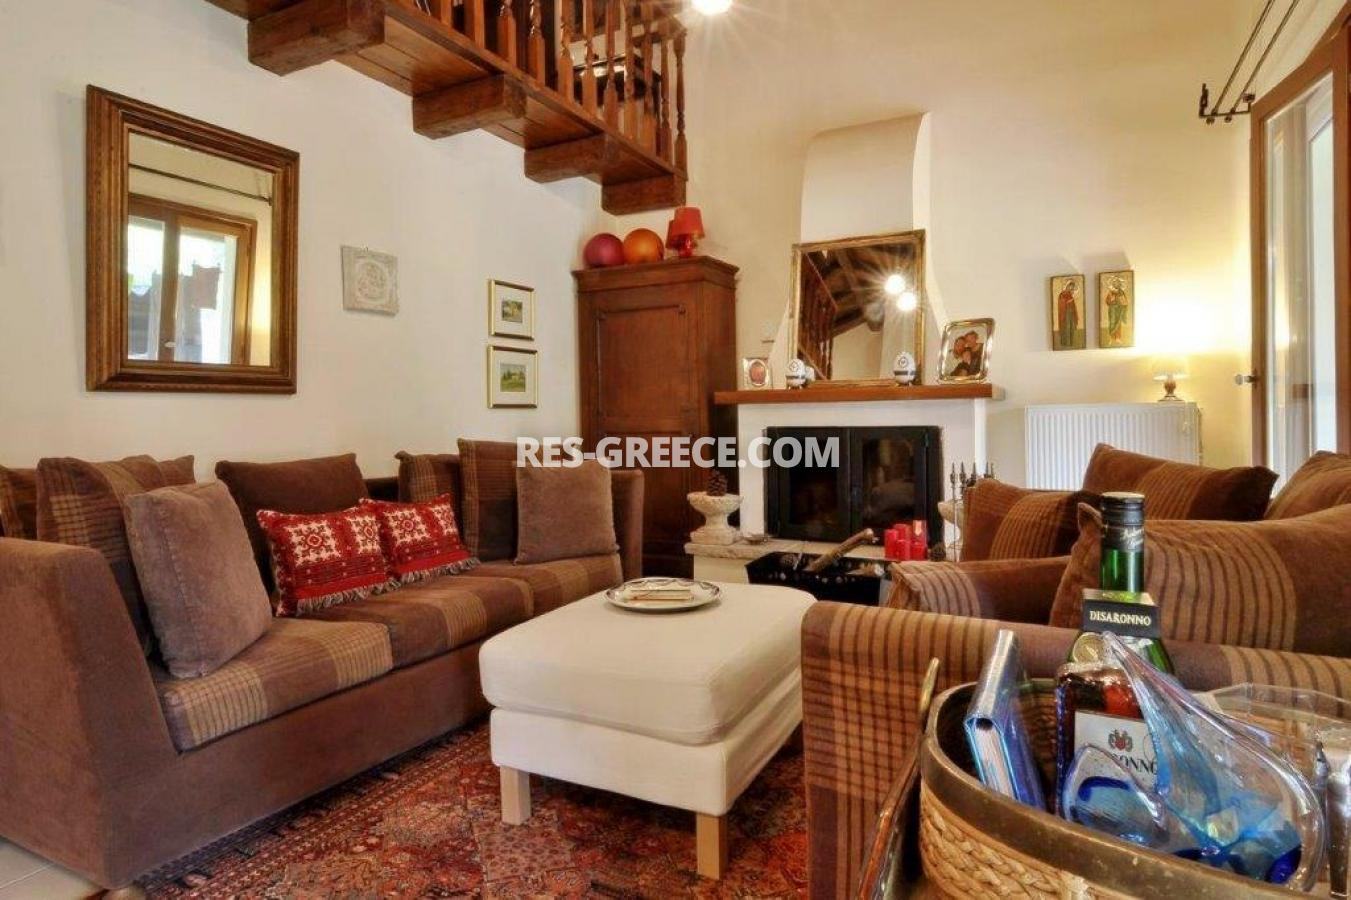 Poulades, Ionian Islands, Greece - Mediterranean bungalow for sale in Corfu - Photo 3